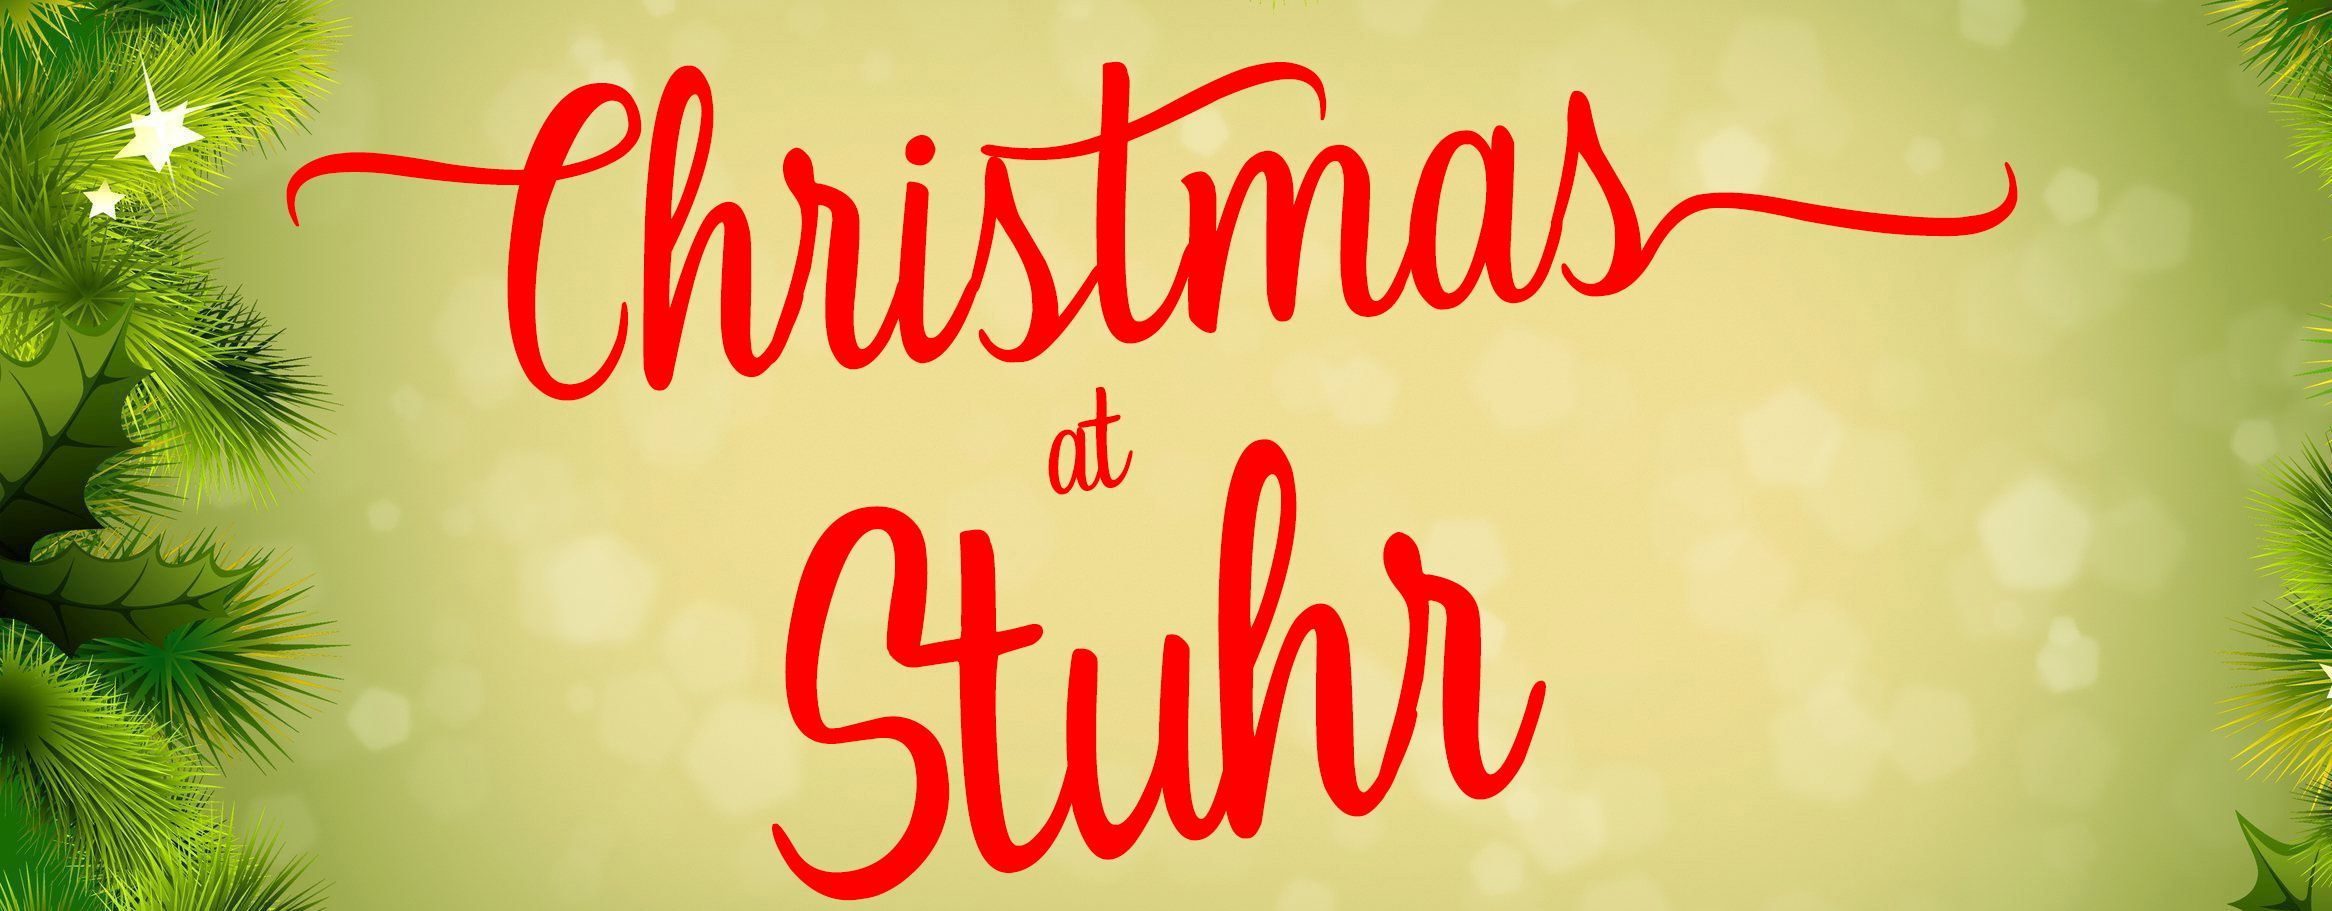 Christmas at Stuhr